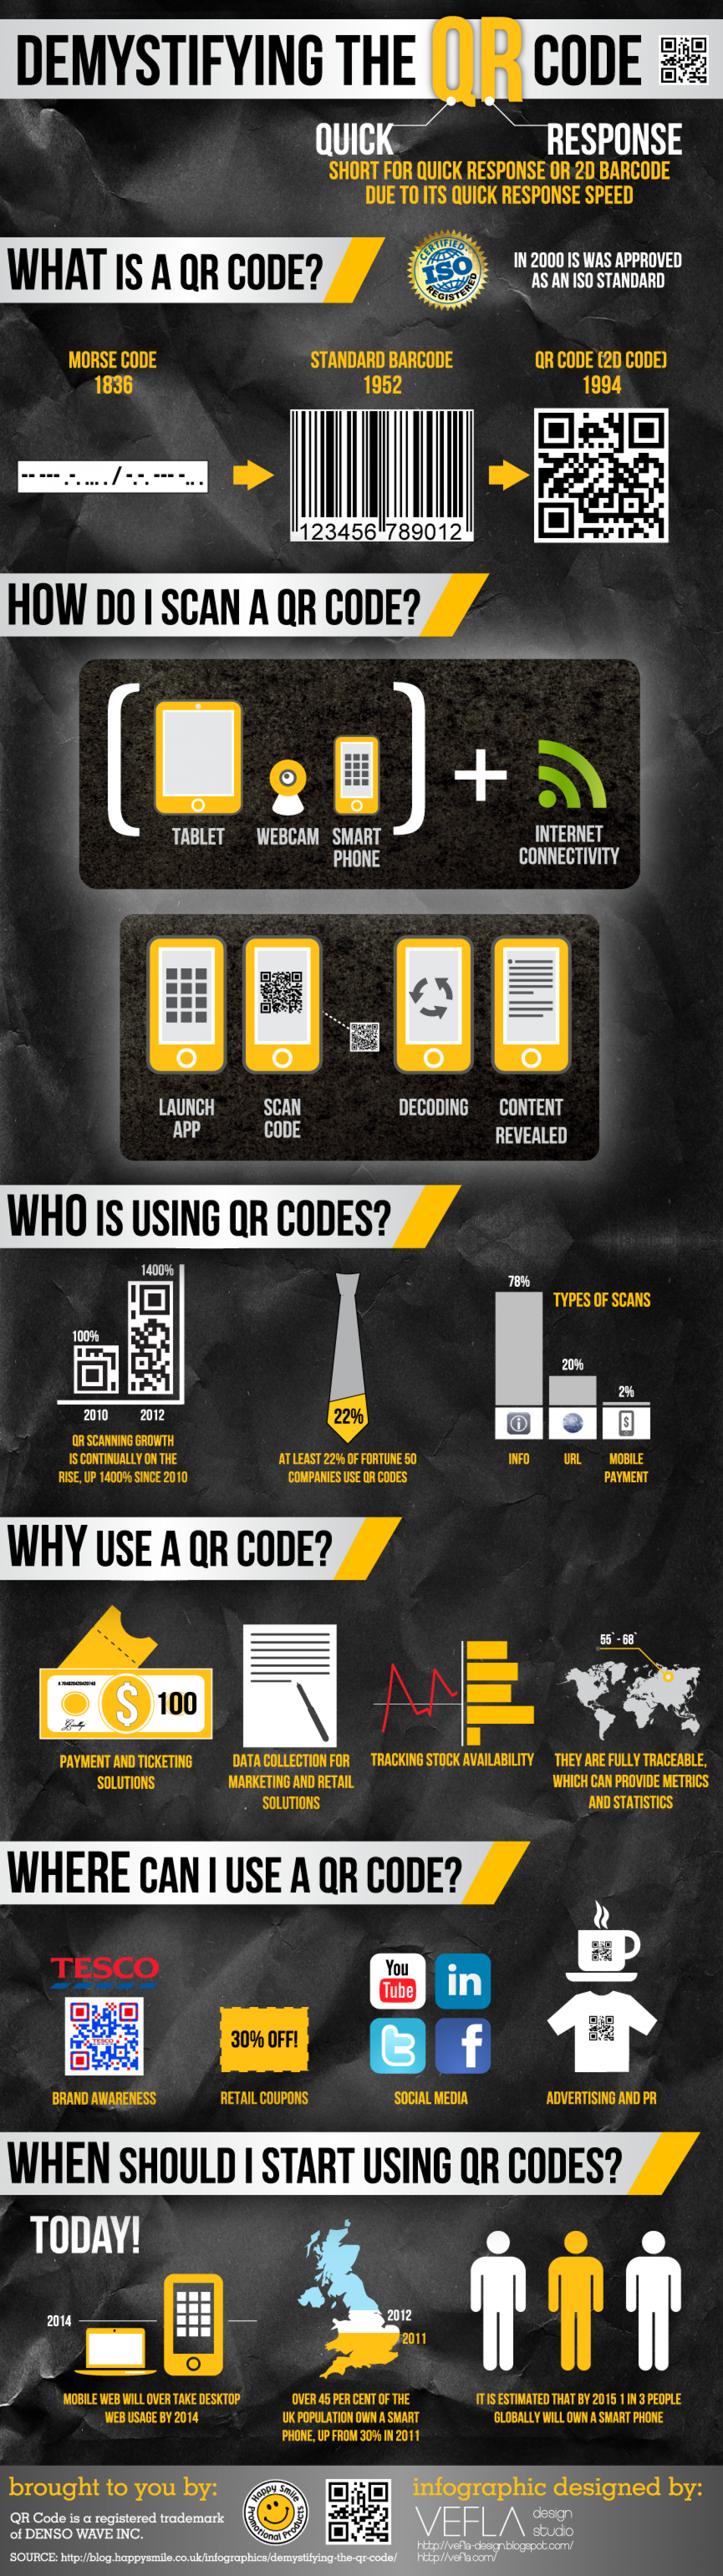 Demystifying The QR Code Infographic